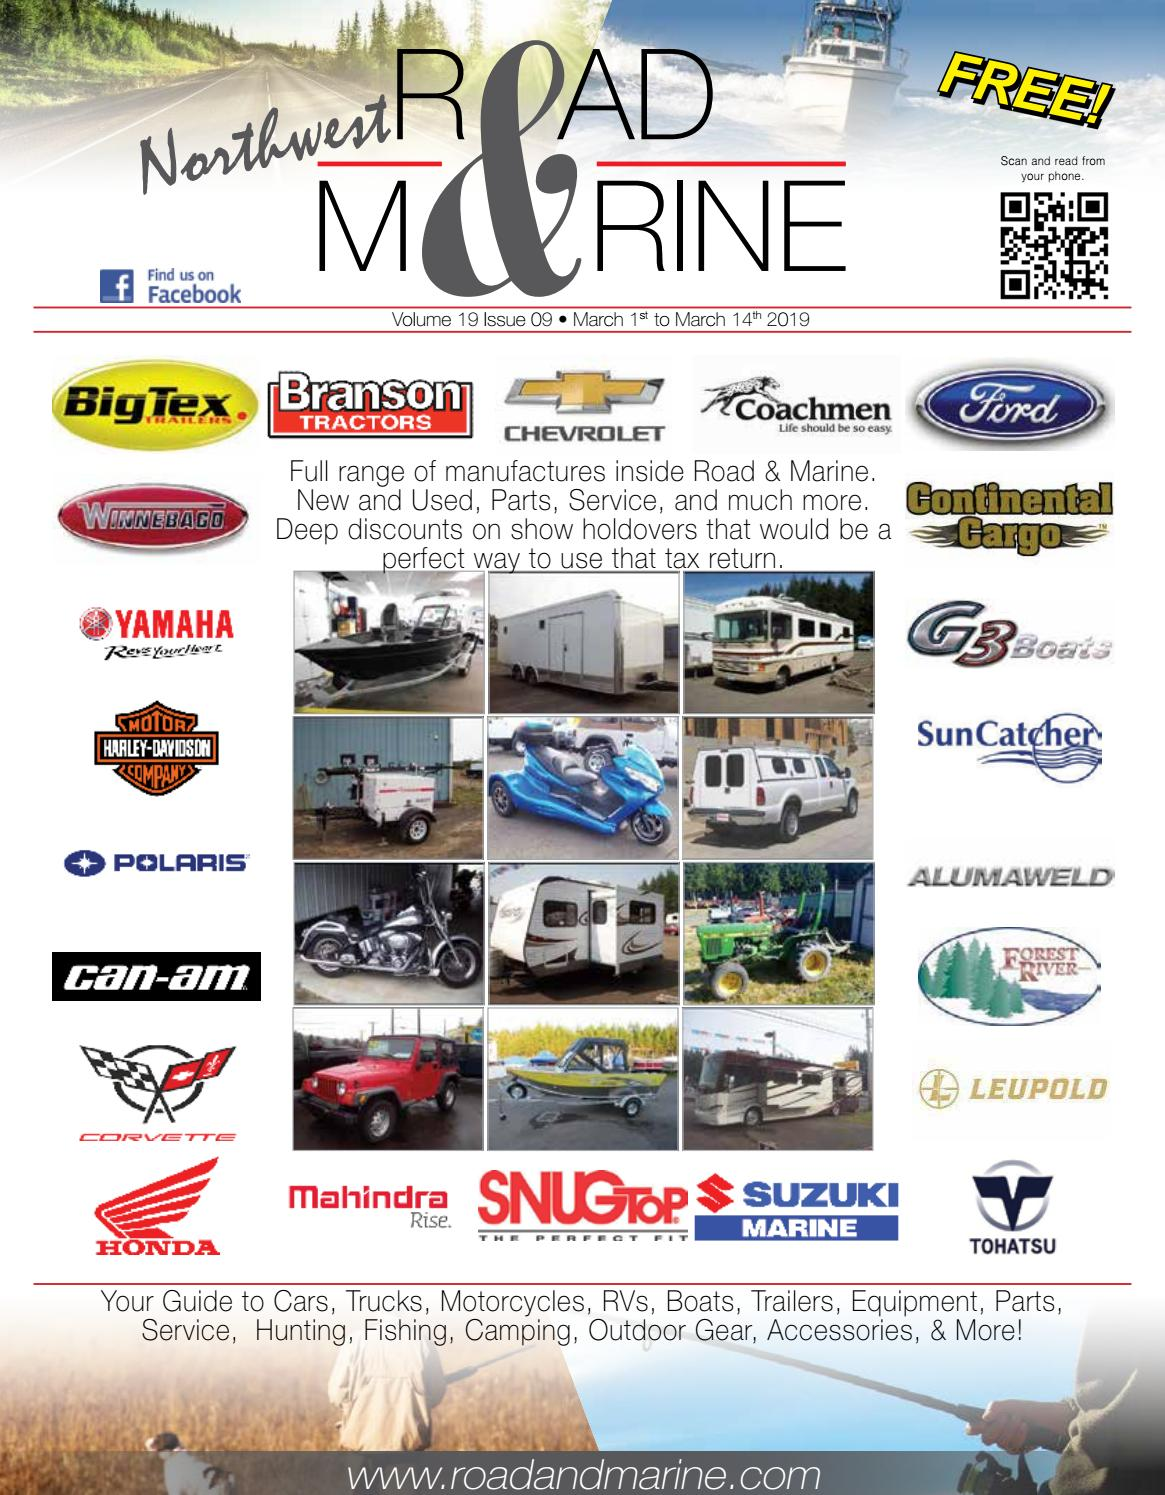 Road and Marine Magazine Vol 19 #09 by Road & Marine Magazine - issuu